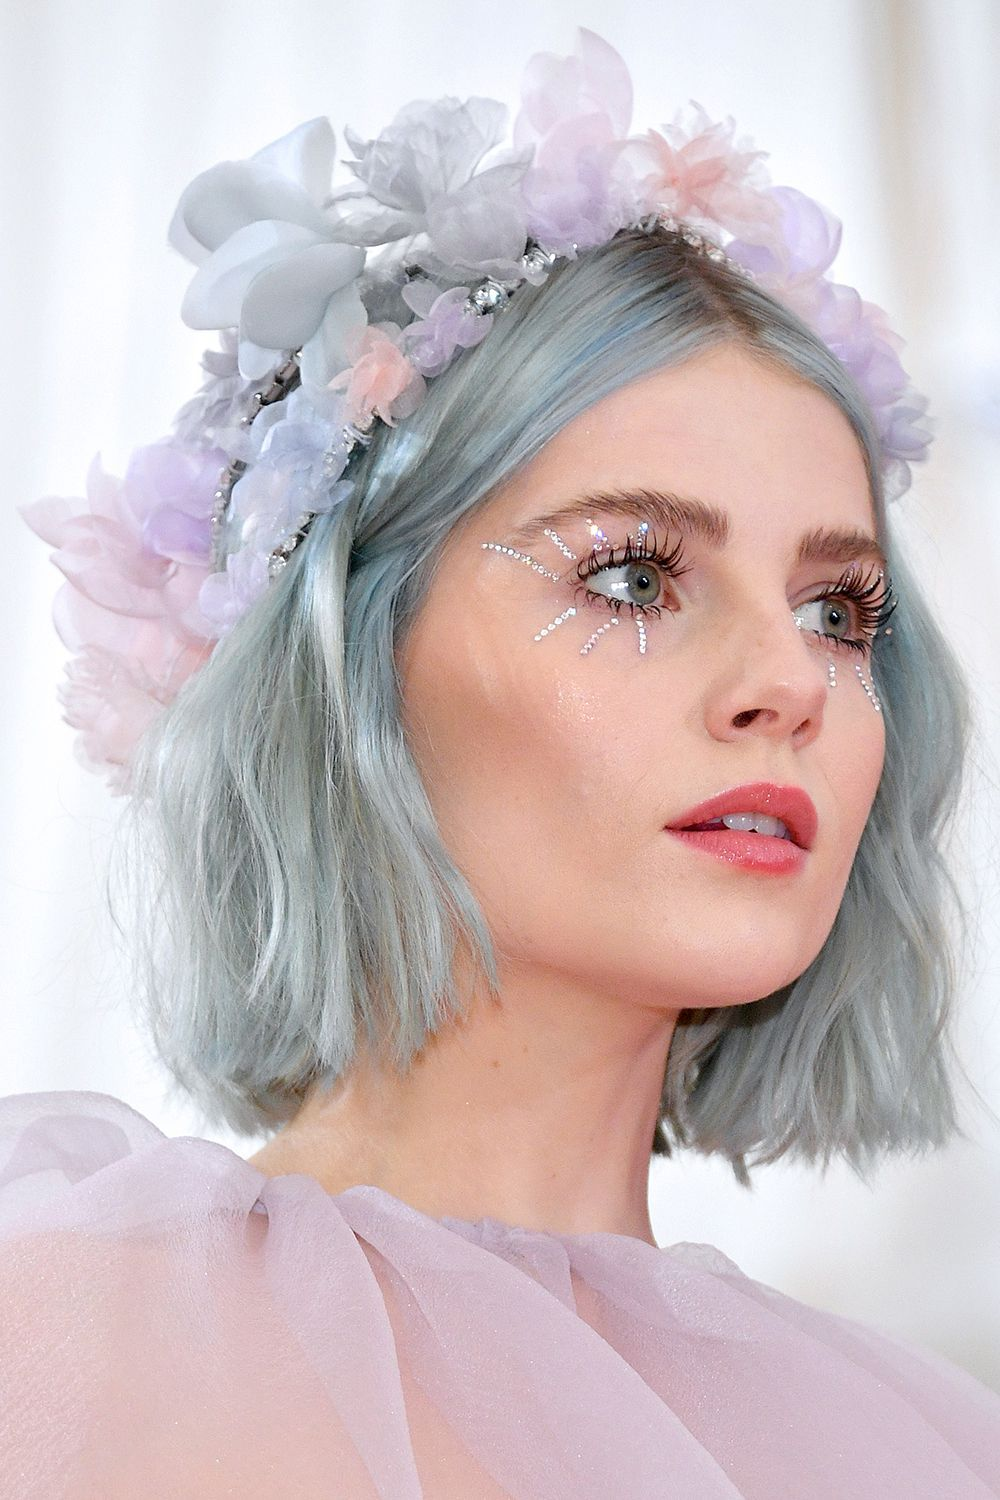 10 of the most incredible Met Gala beauty looks